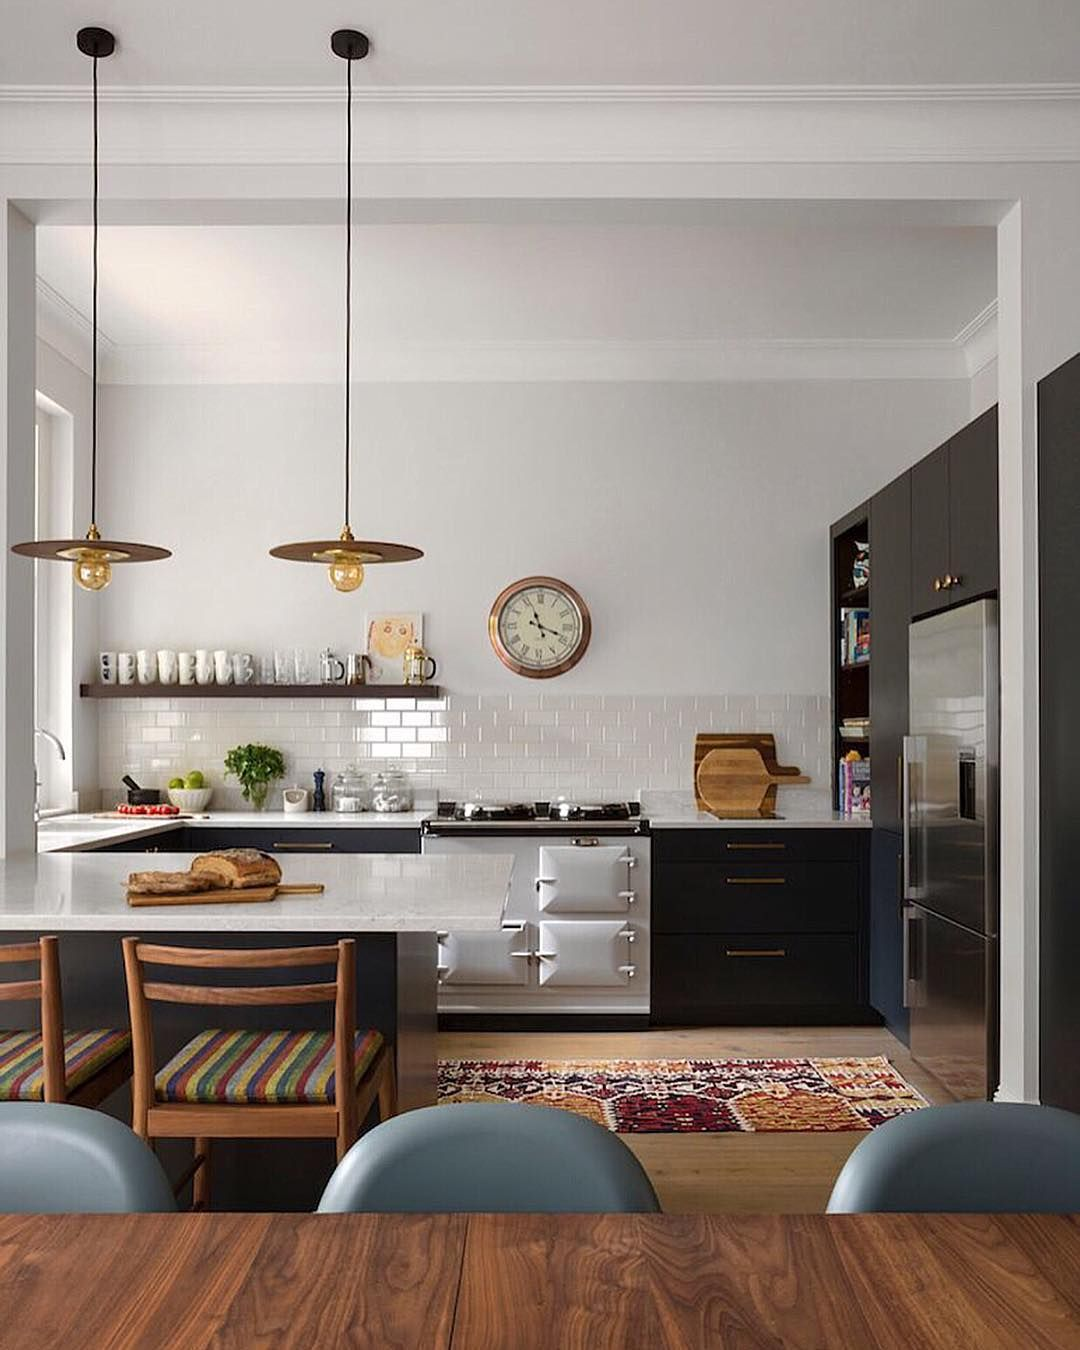 Kitchen of central london project I worked on last year